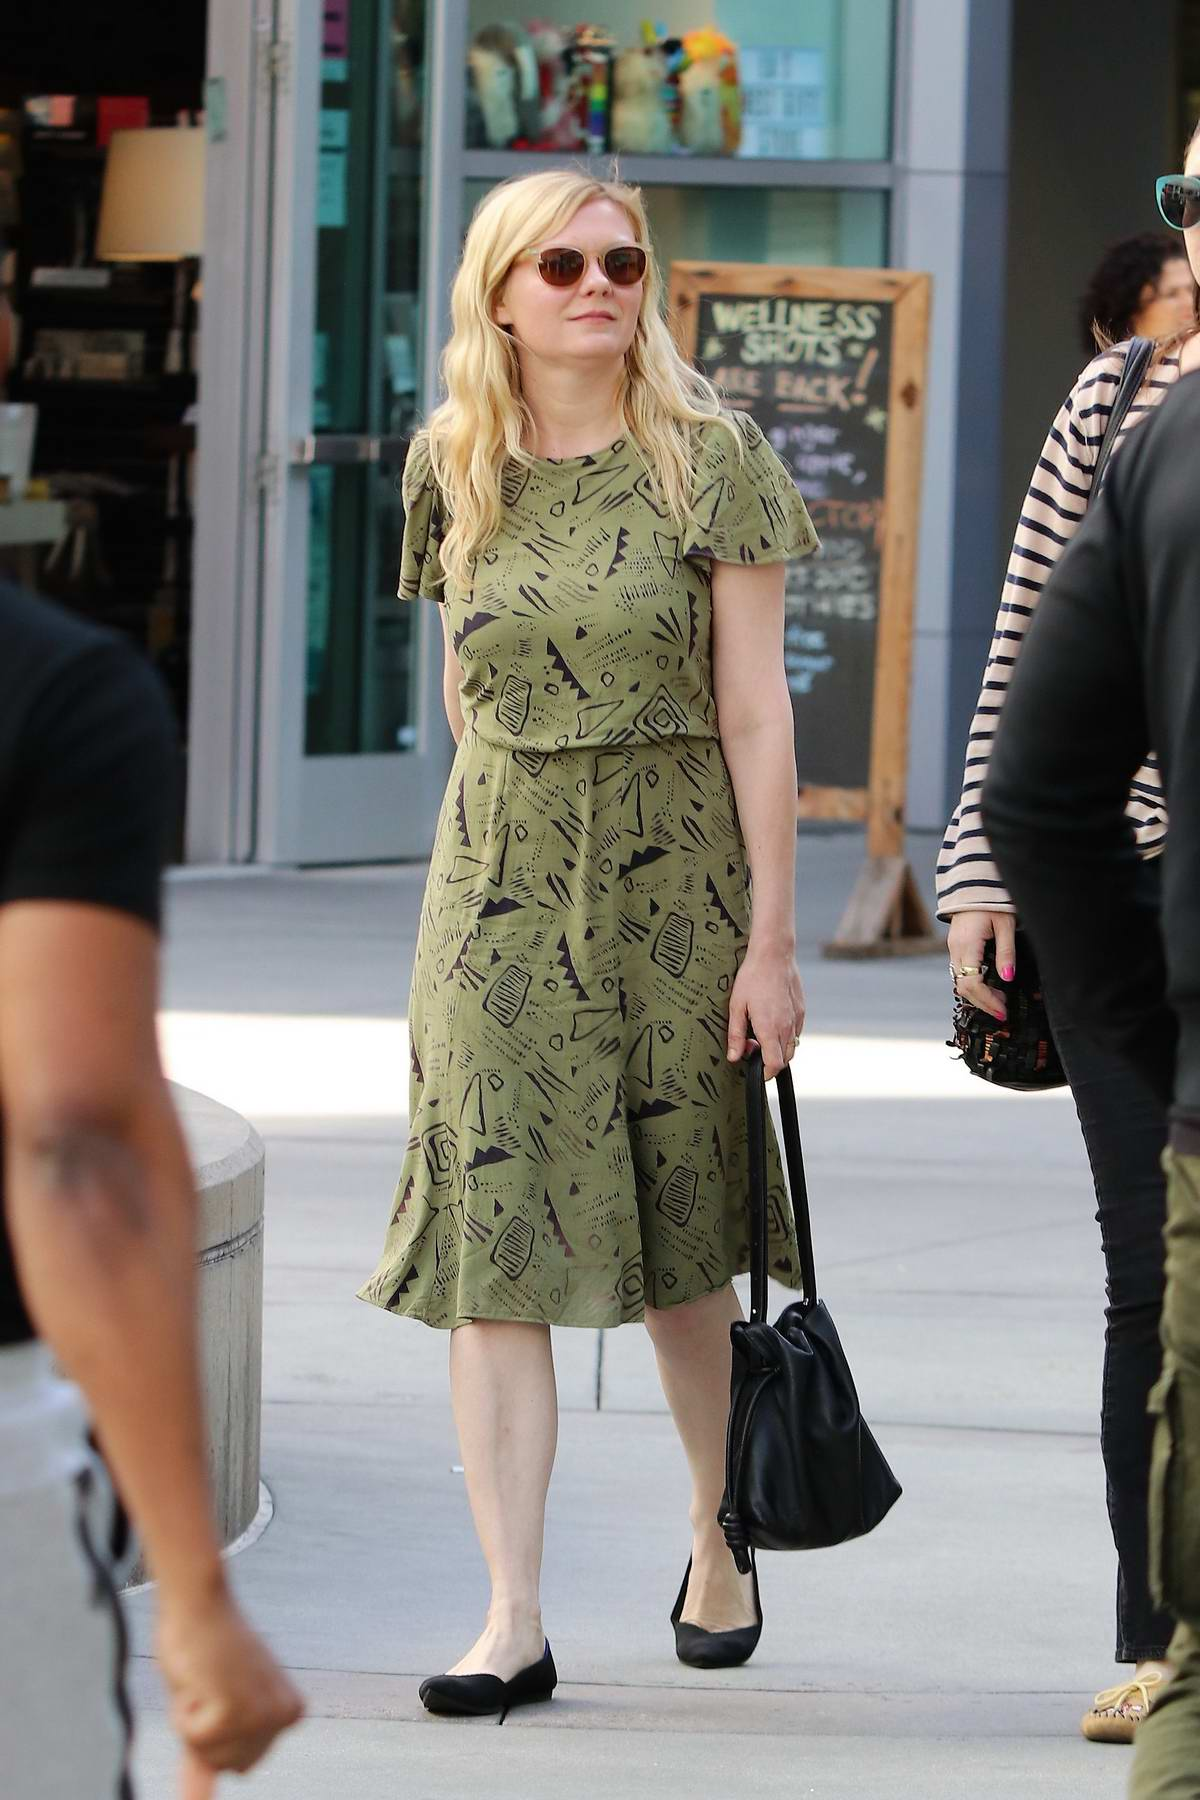 Kirsten Dunst looks casual in a green summer dress as she steps out to see a movie with a friend in Los Angeles